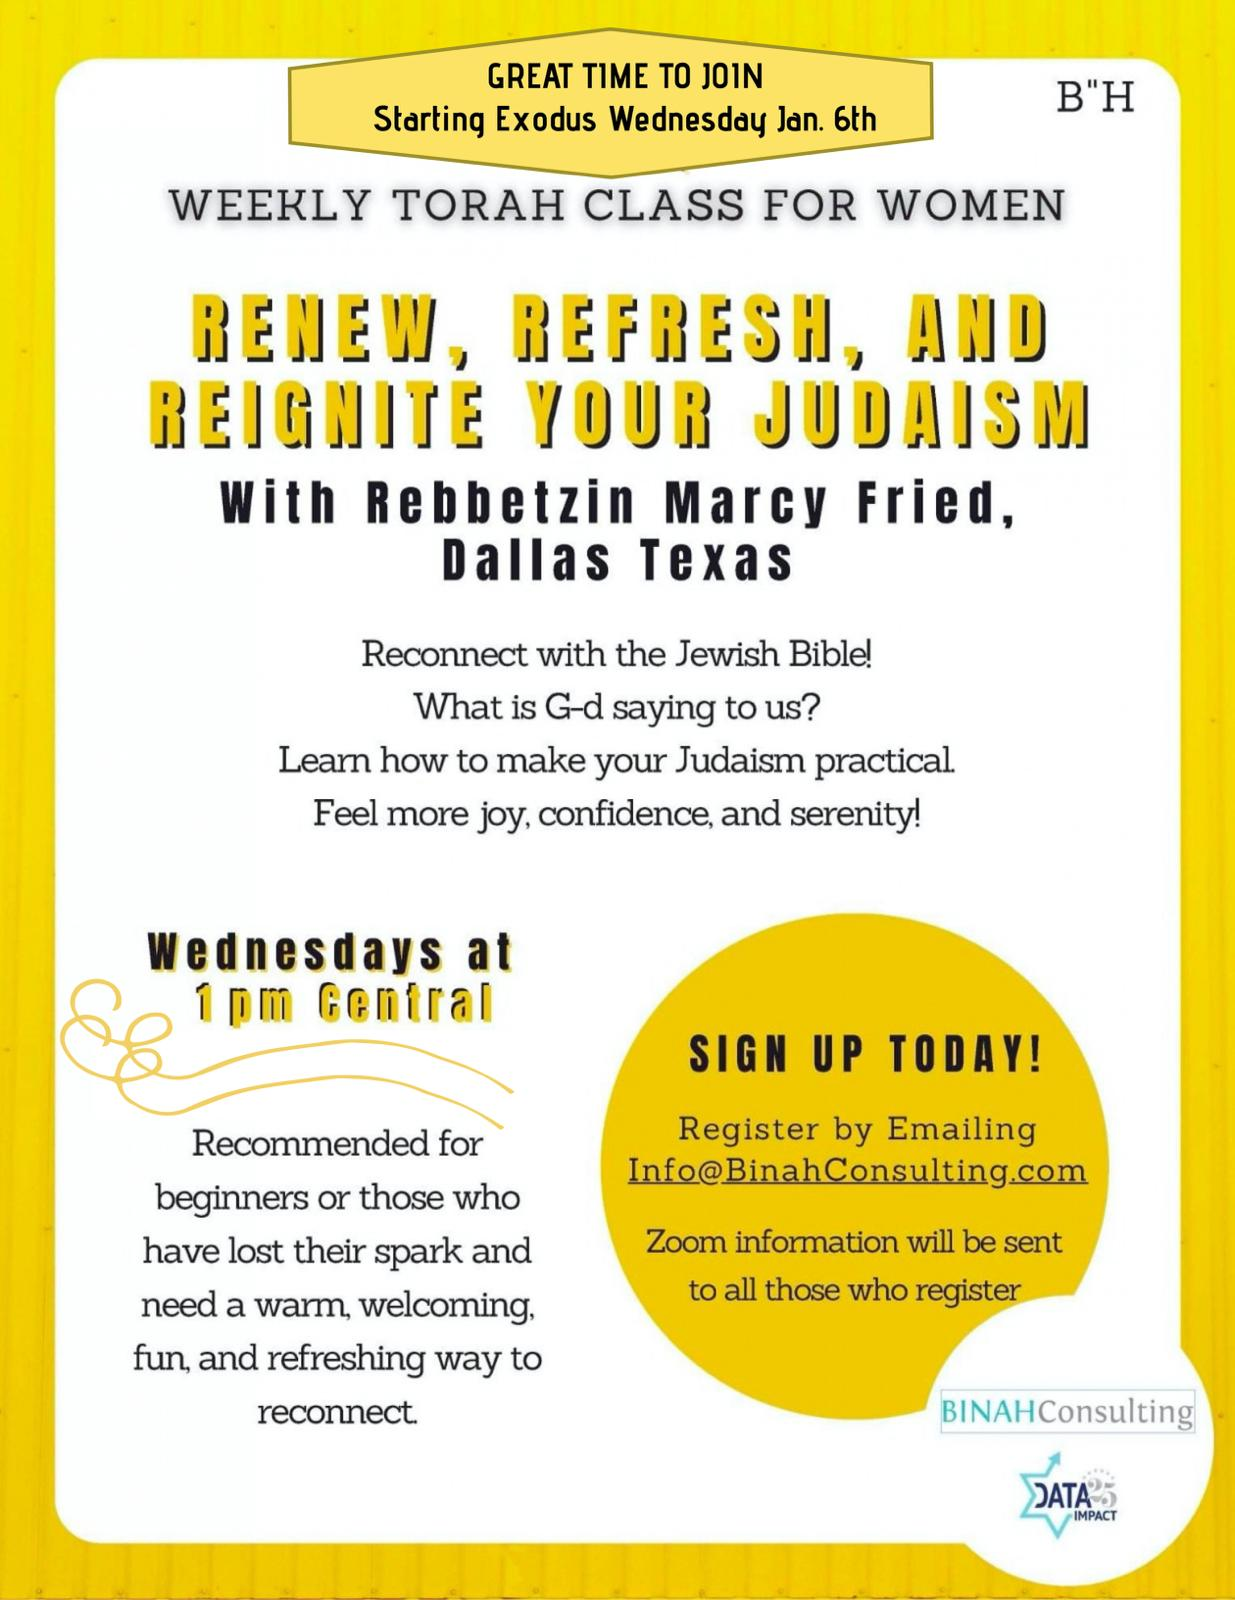 Renew, Refresh and Reignite Your Judaism with Rebbetzin Marcy Fried 1